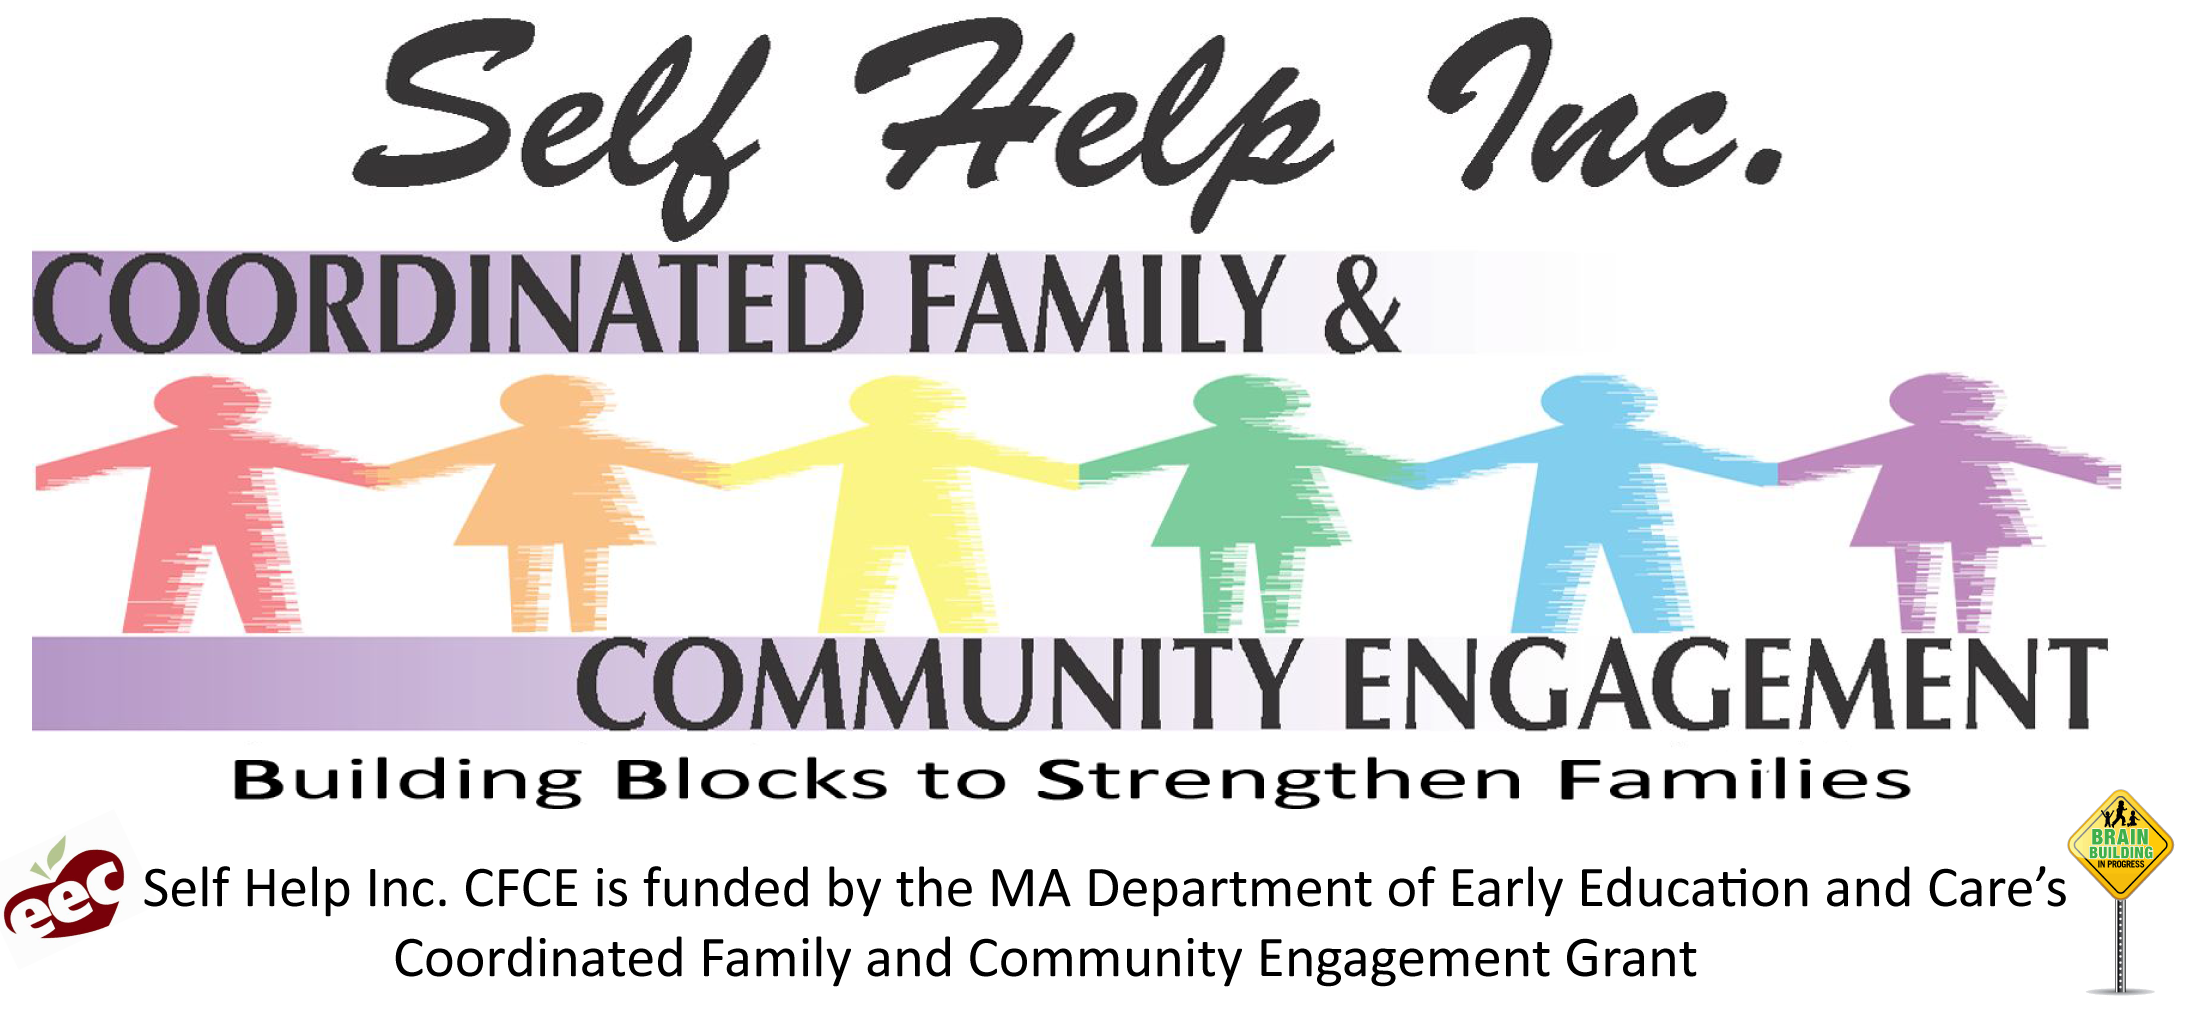 Nld And Families >> Self Help Inc Coordinated Family And Community Engagement Avon Ma